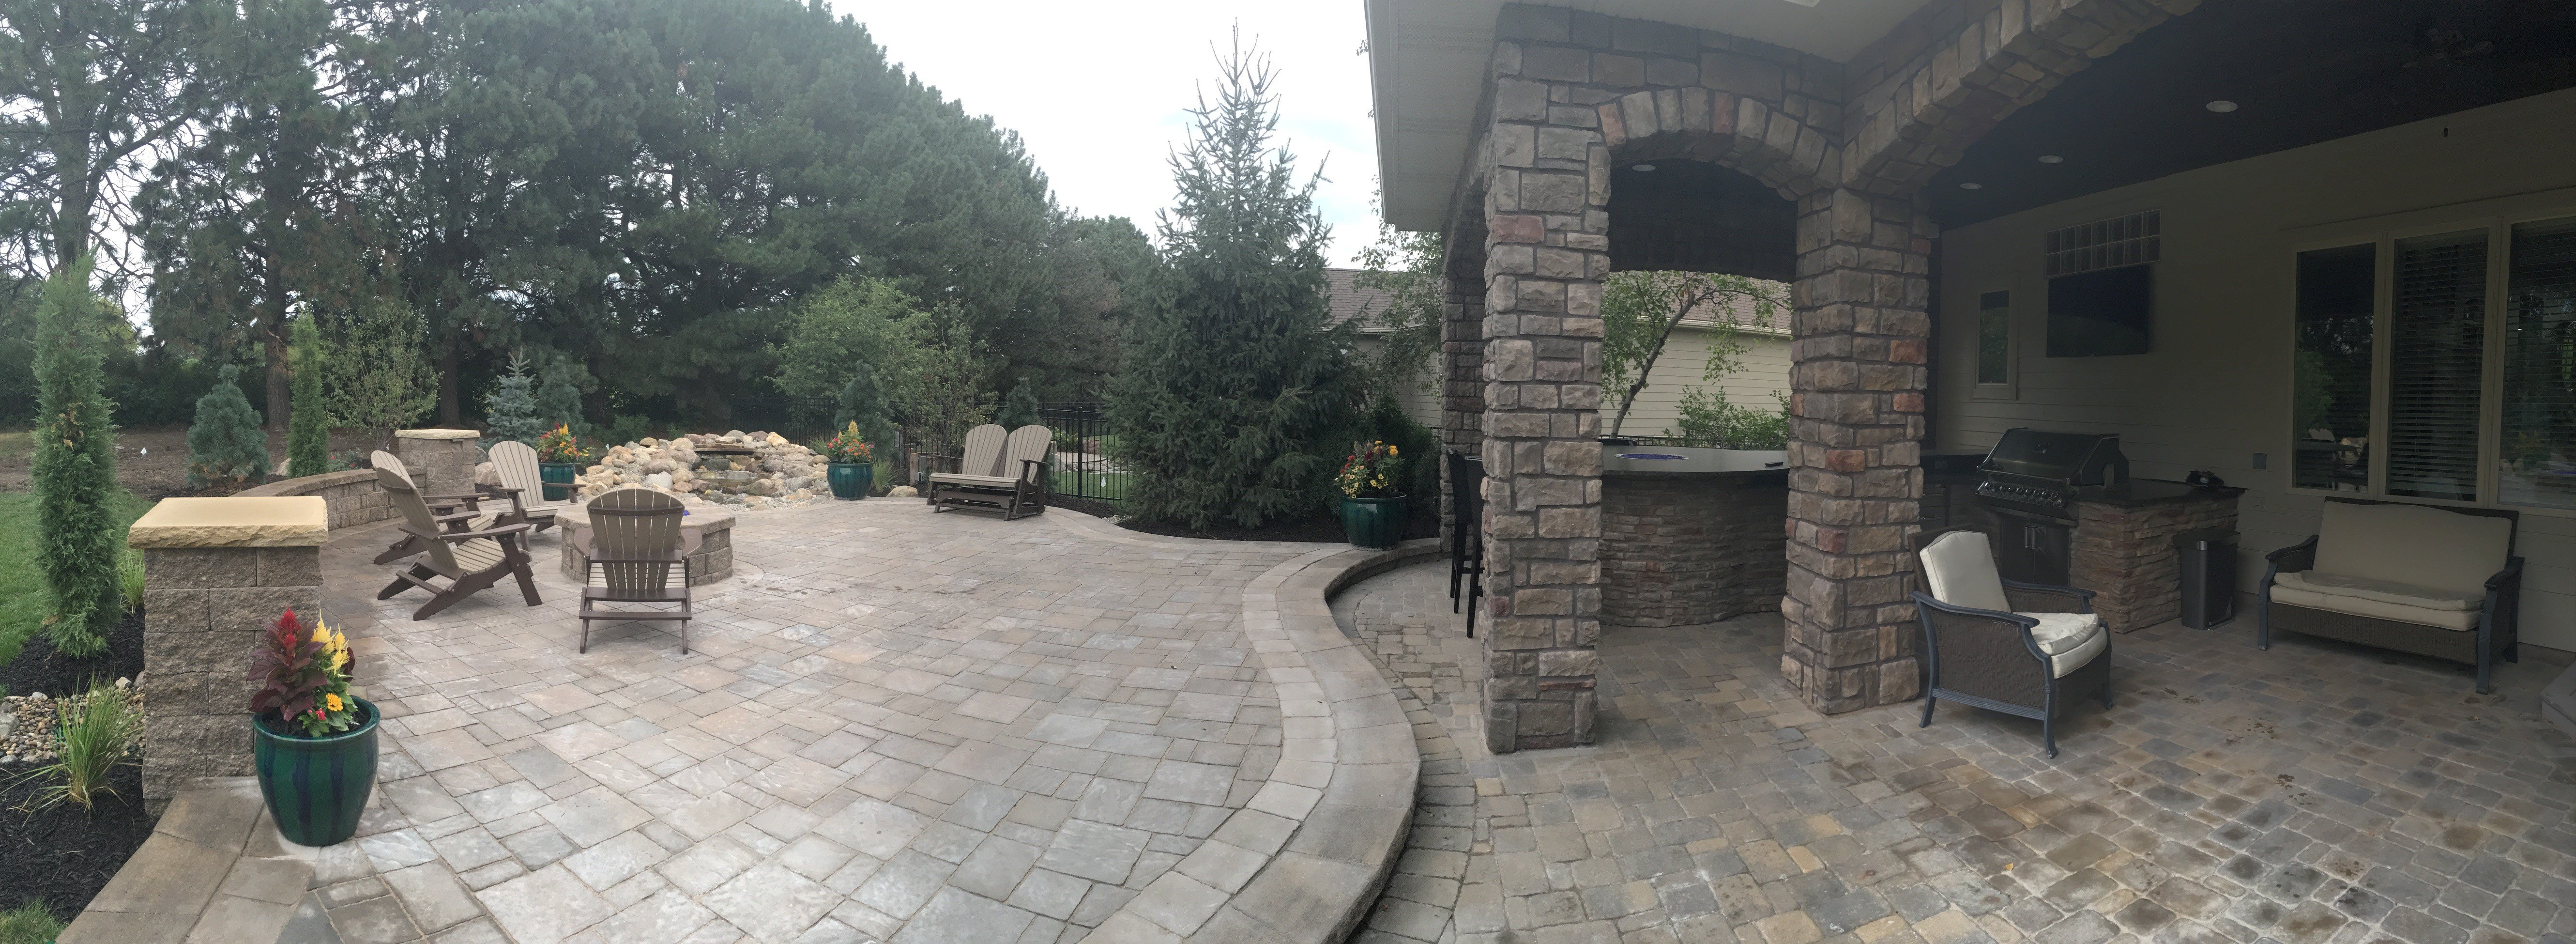 woodys lawn and landscape llc landscaper lincoln ne